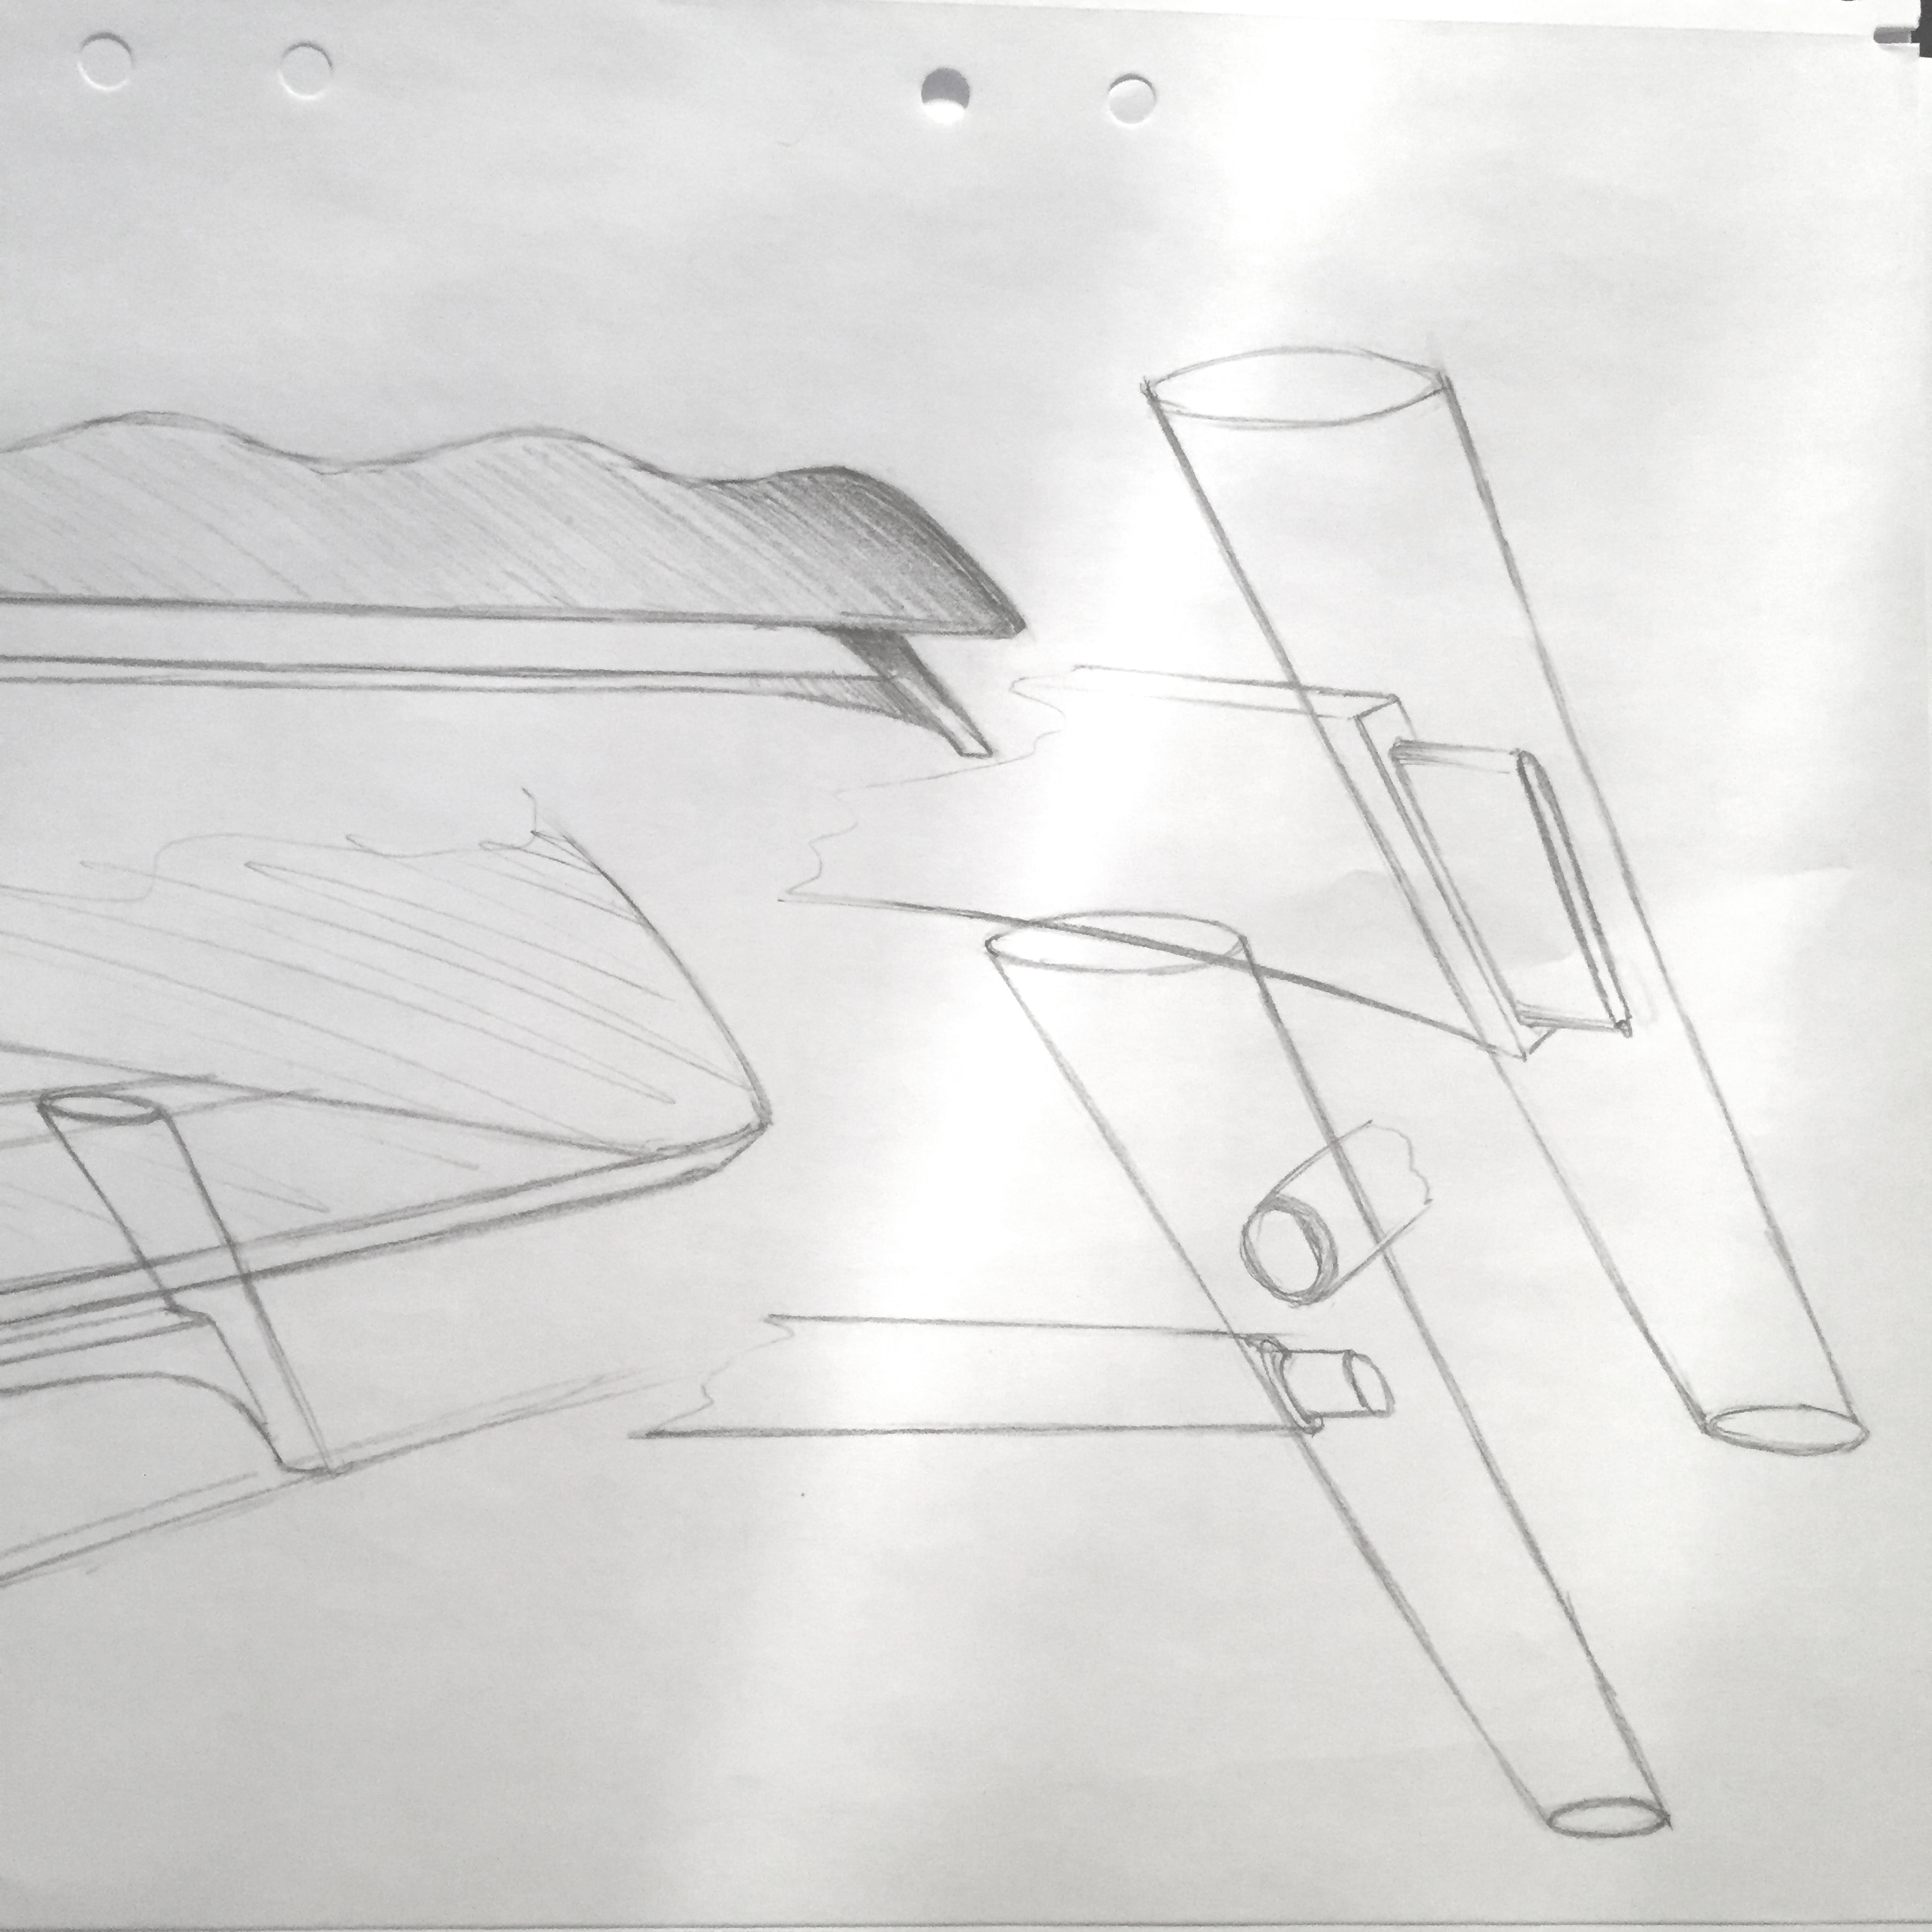 Technical drawing of a sofa by Sebstian Galo